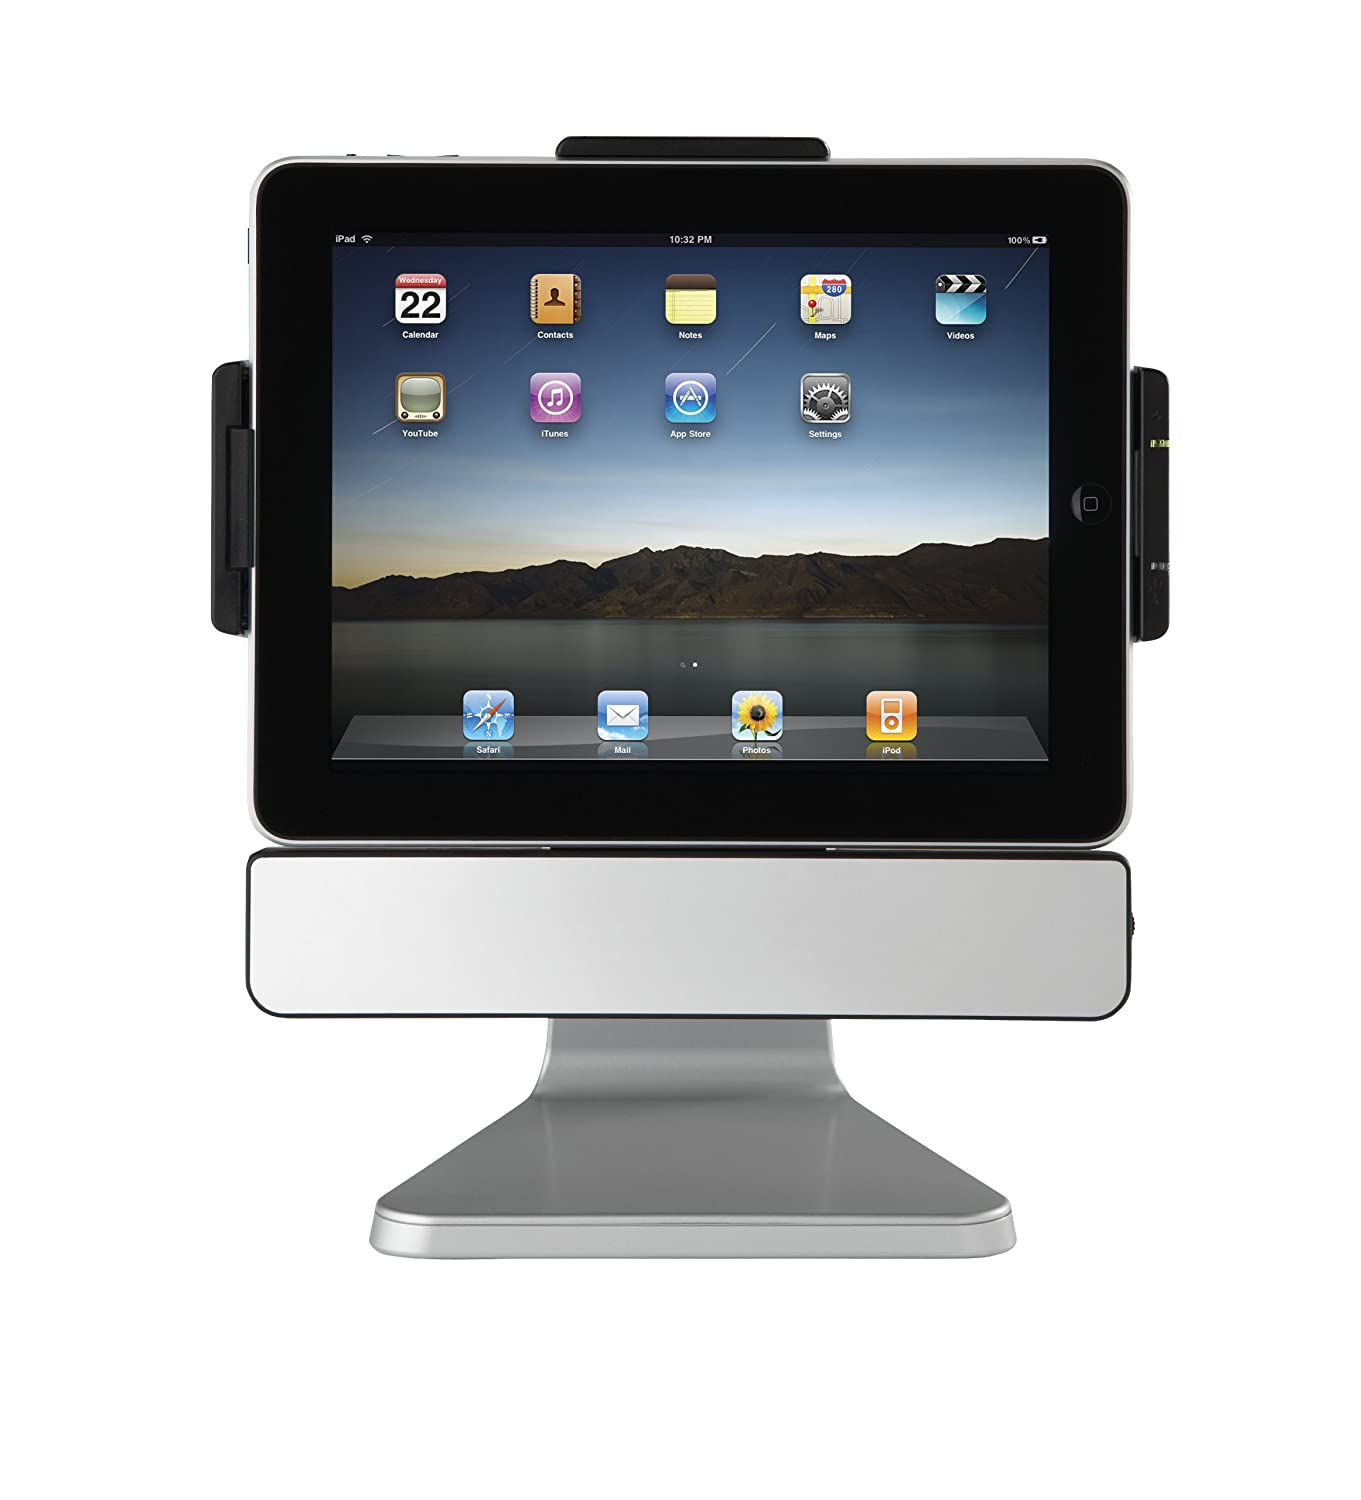 SMK-LINK & GYRATION Paddock 10 Stand for The Apple iPad 1 with Speaker Charge and Sync Rotate (VP3650), Silver